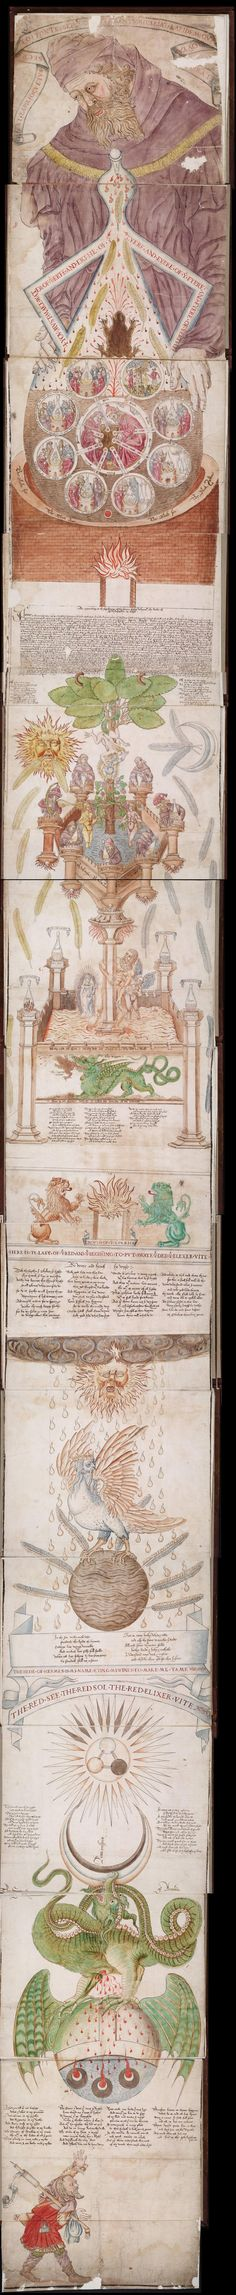 The Ripley Scroll-Ancient Alchemical Text